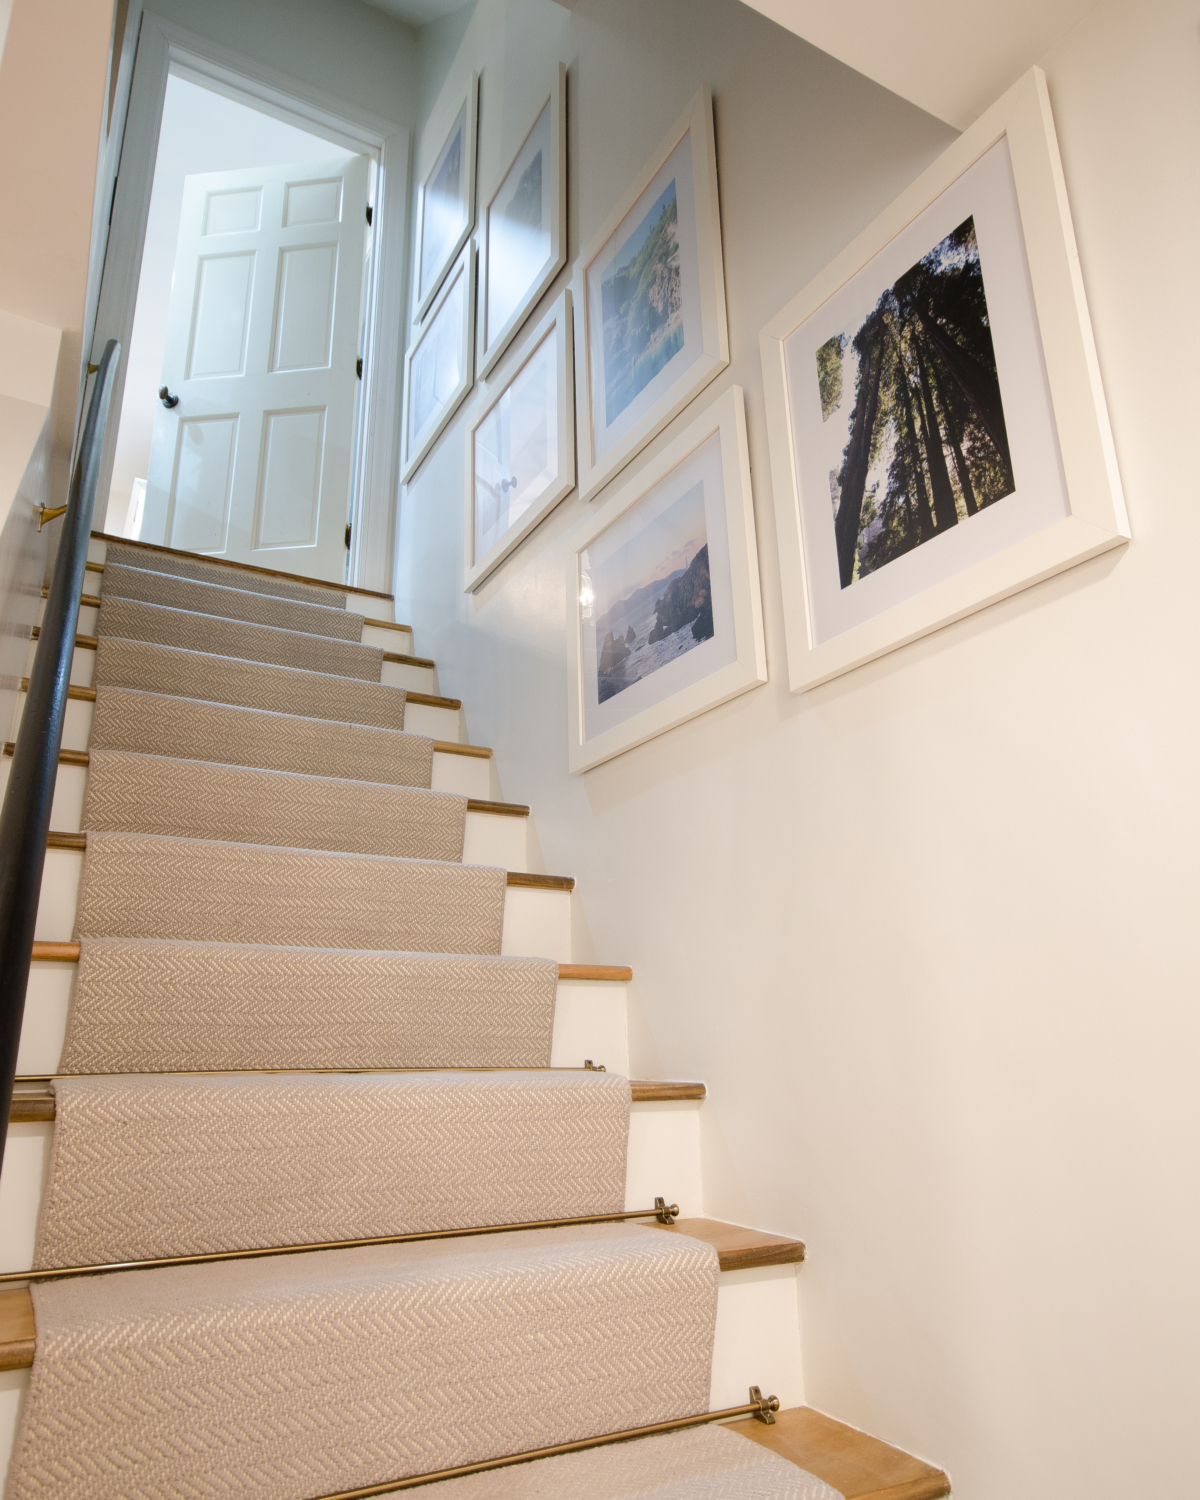 An easy tutorial showing you how to install a stair runner yourself!